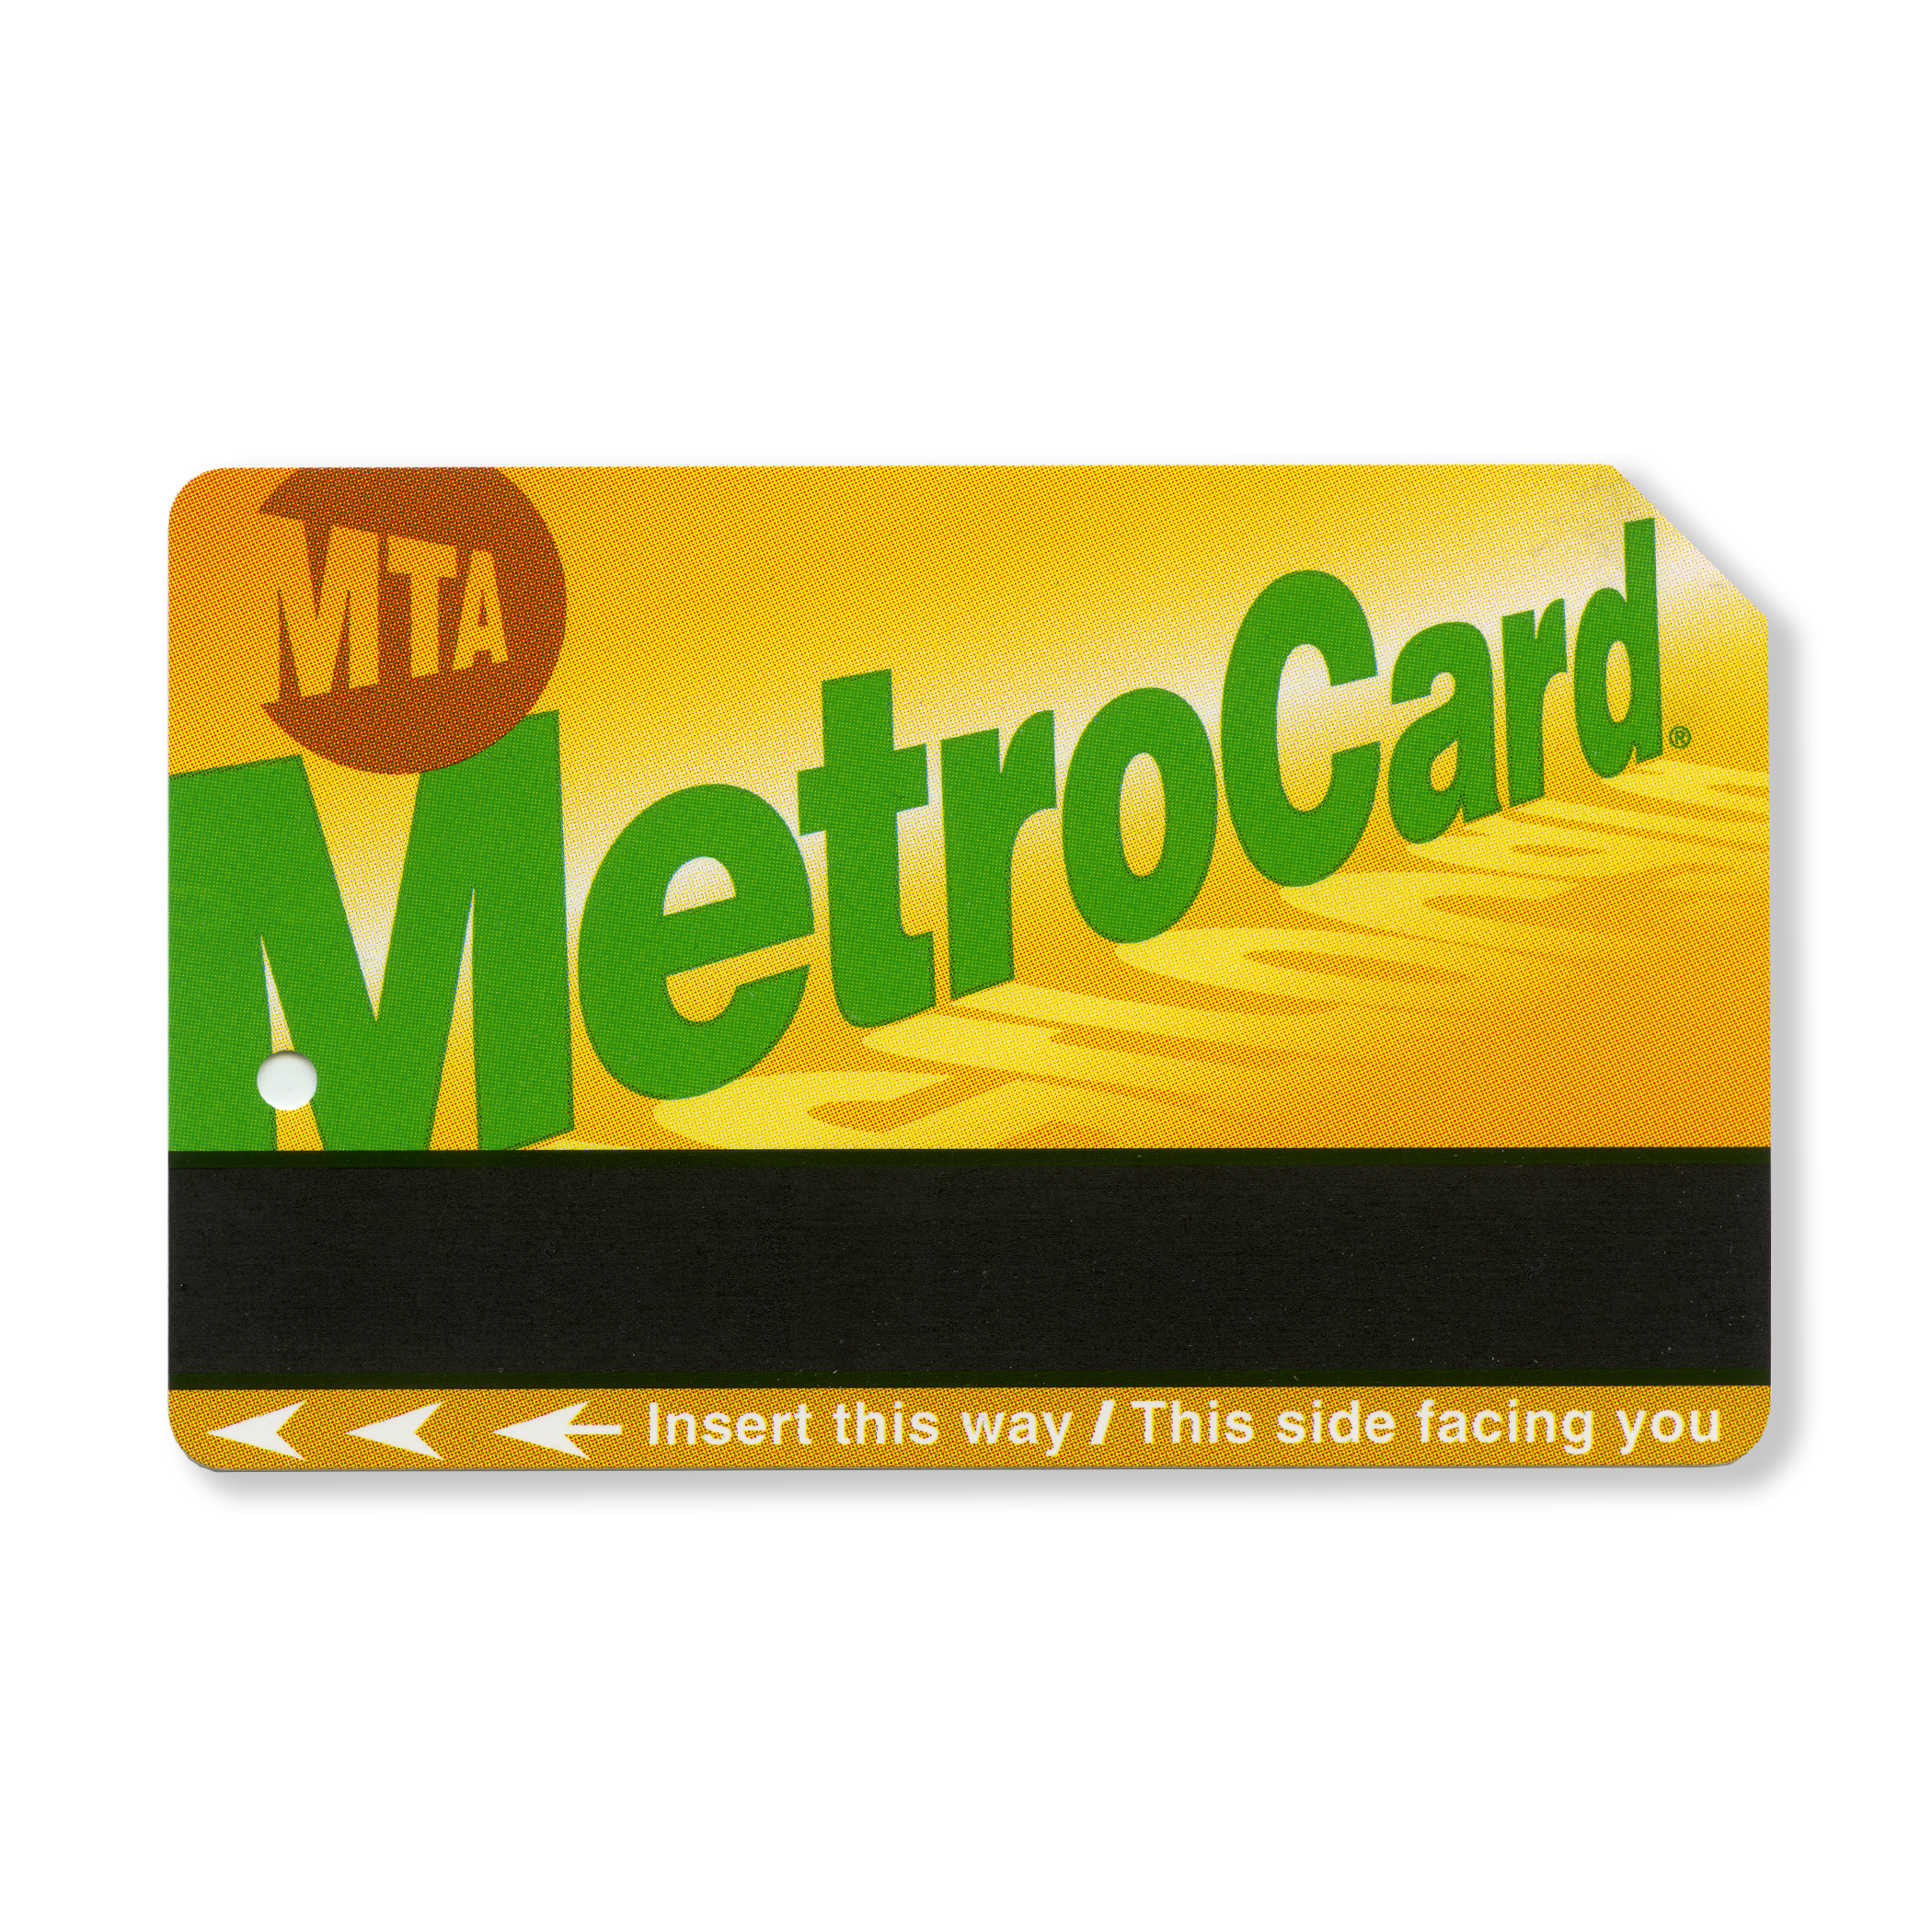 the_nycta_project_earth_day_metro_card.jpg